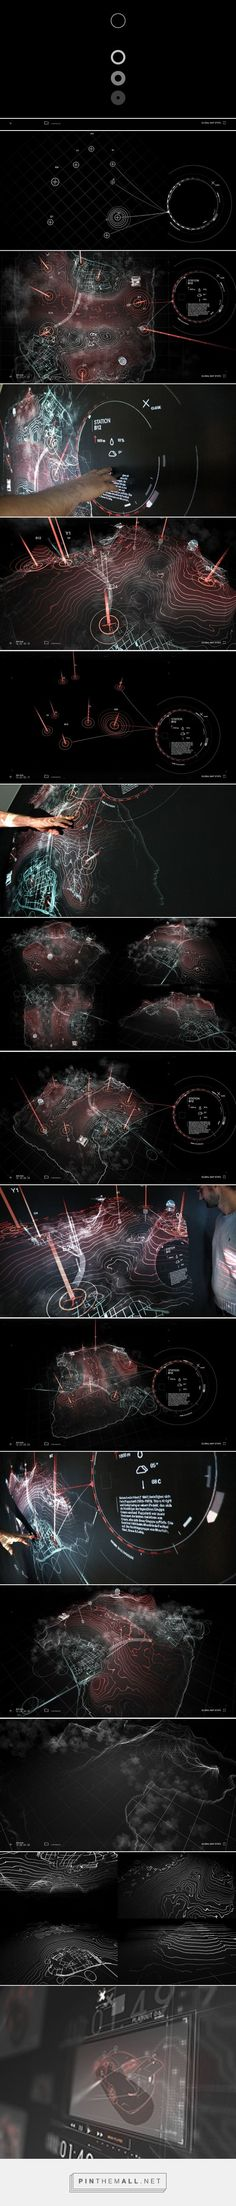 SCI Map on Behance... - a grouped images picture - Pin Them All: